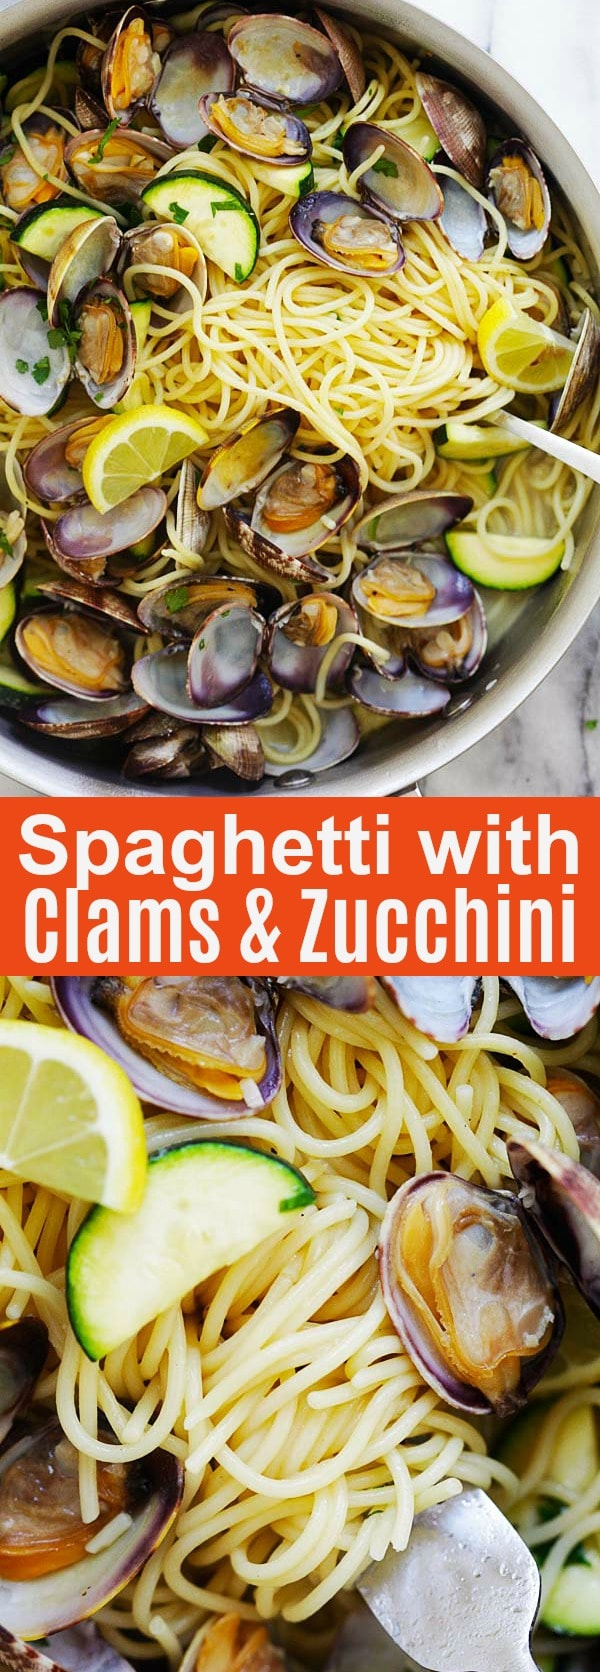 Spaghetti with Clams and Zucchini - easy spaghetti pasta with clams and zucchini, white wine, olive oil, butter and garlic. Weeknight dinner is ready in 20 mins | rasamalaysia.com